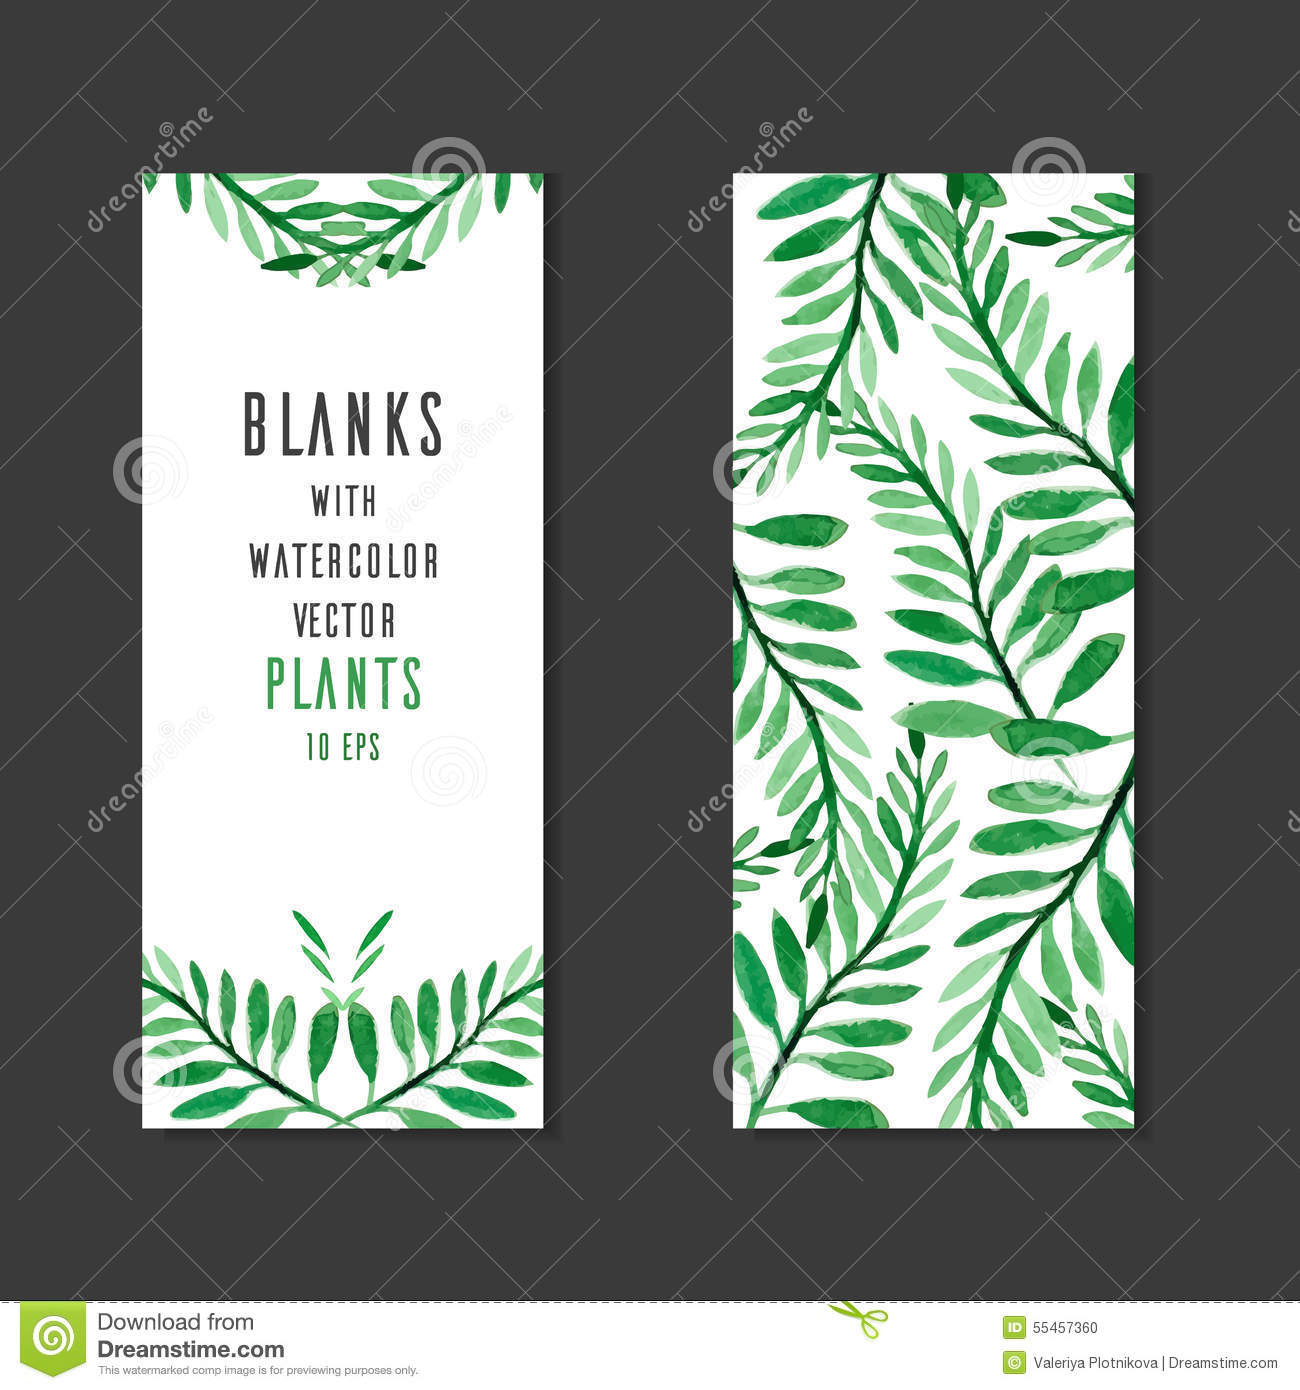 Vector blank with place for text, and the reverse side with watercolor plants